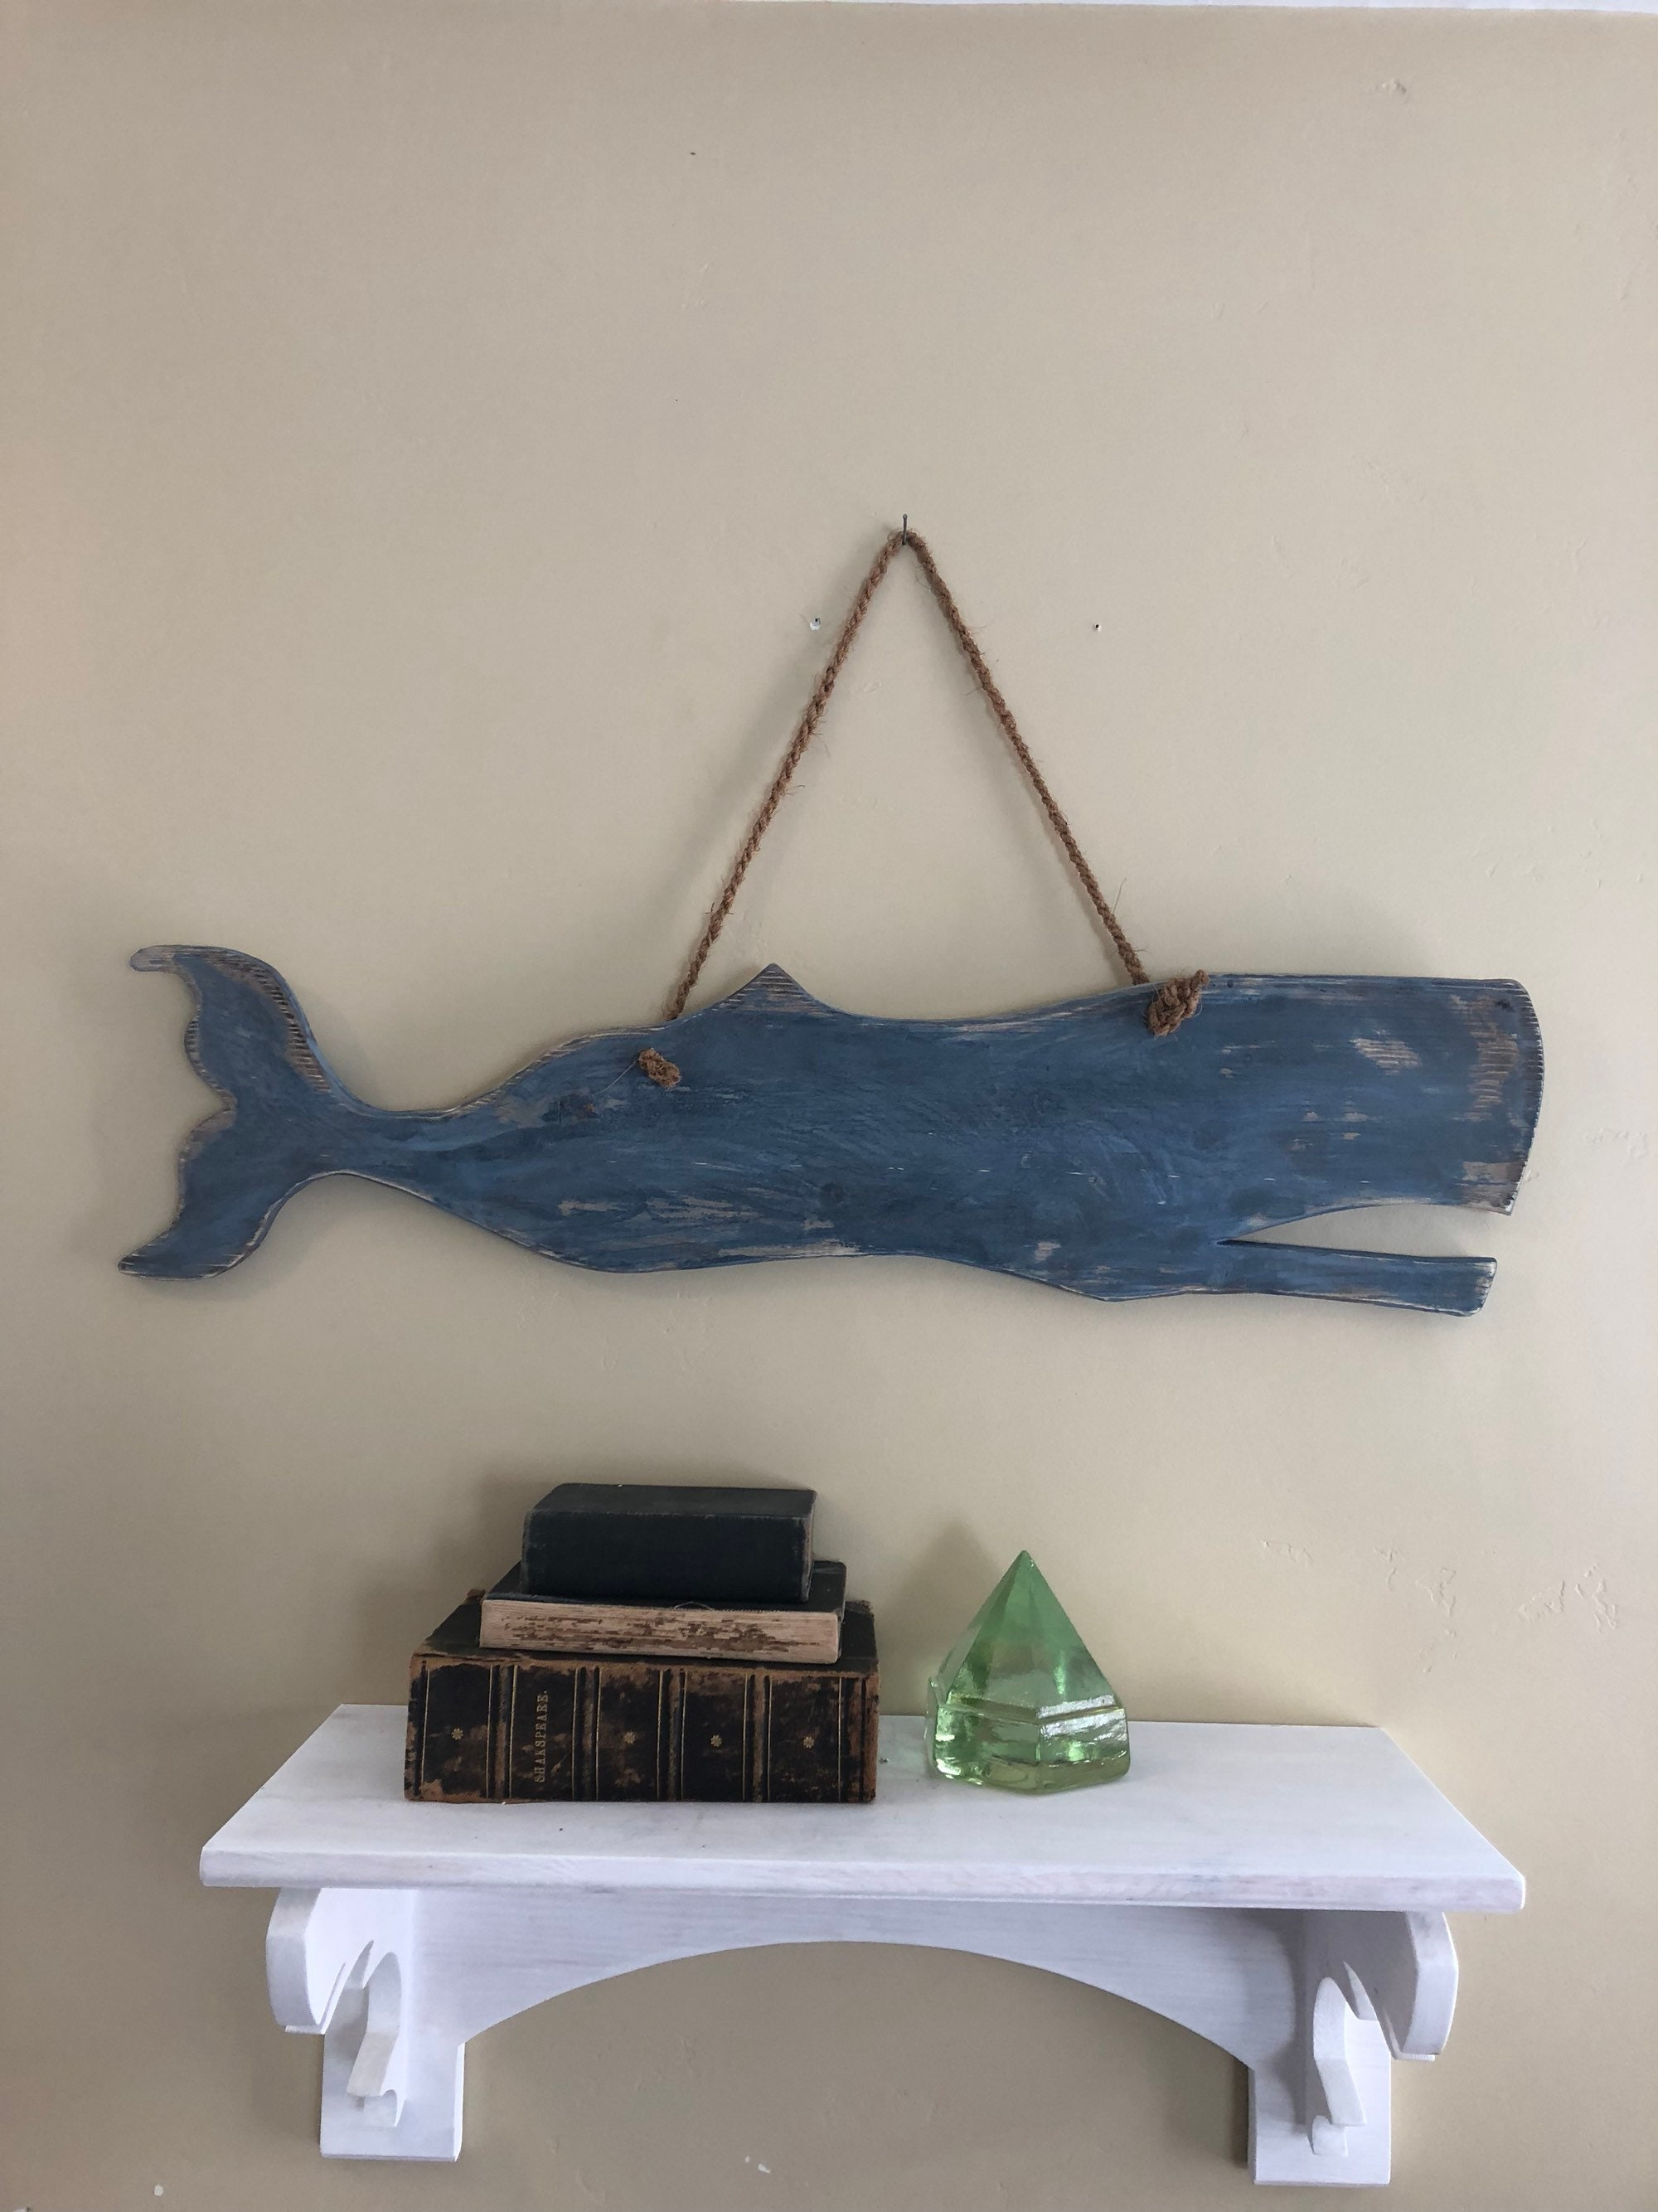 33 Wooden Whale Hanging Wall Sculpture Nautical Decor